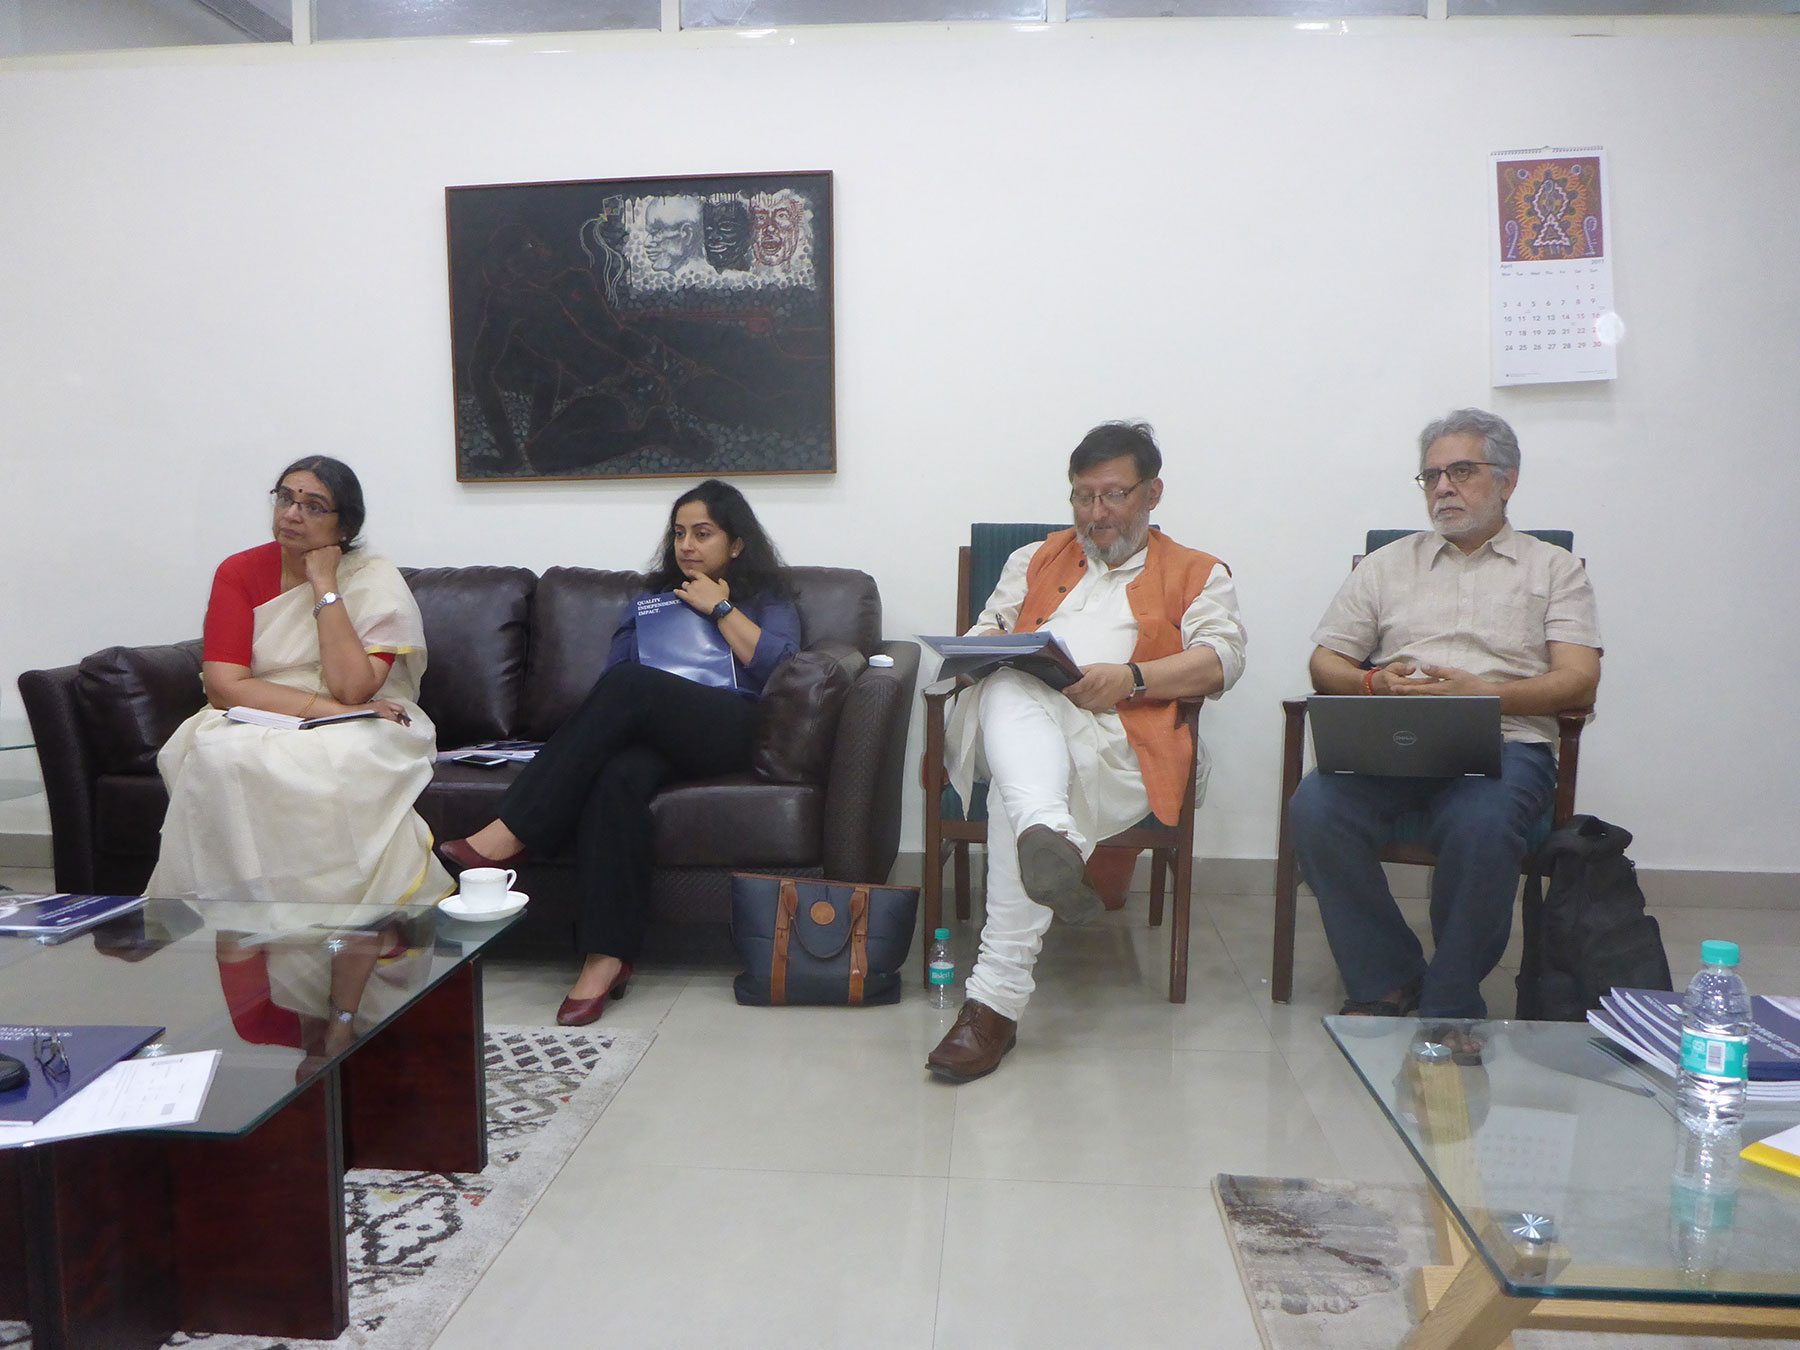 Rajani Vaid, Shamika Ravi (Senior Fellow, Brookings India), Shakti Sinha (Director NMML), Subhash Mishra (Regional Evaluation Specialist UNICEF)